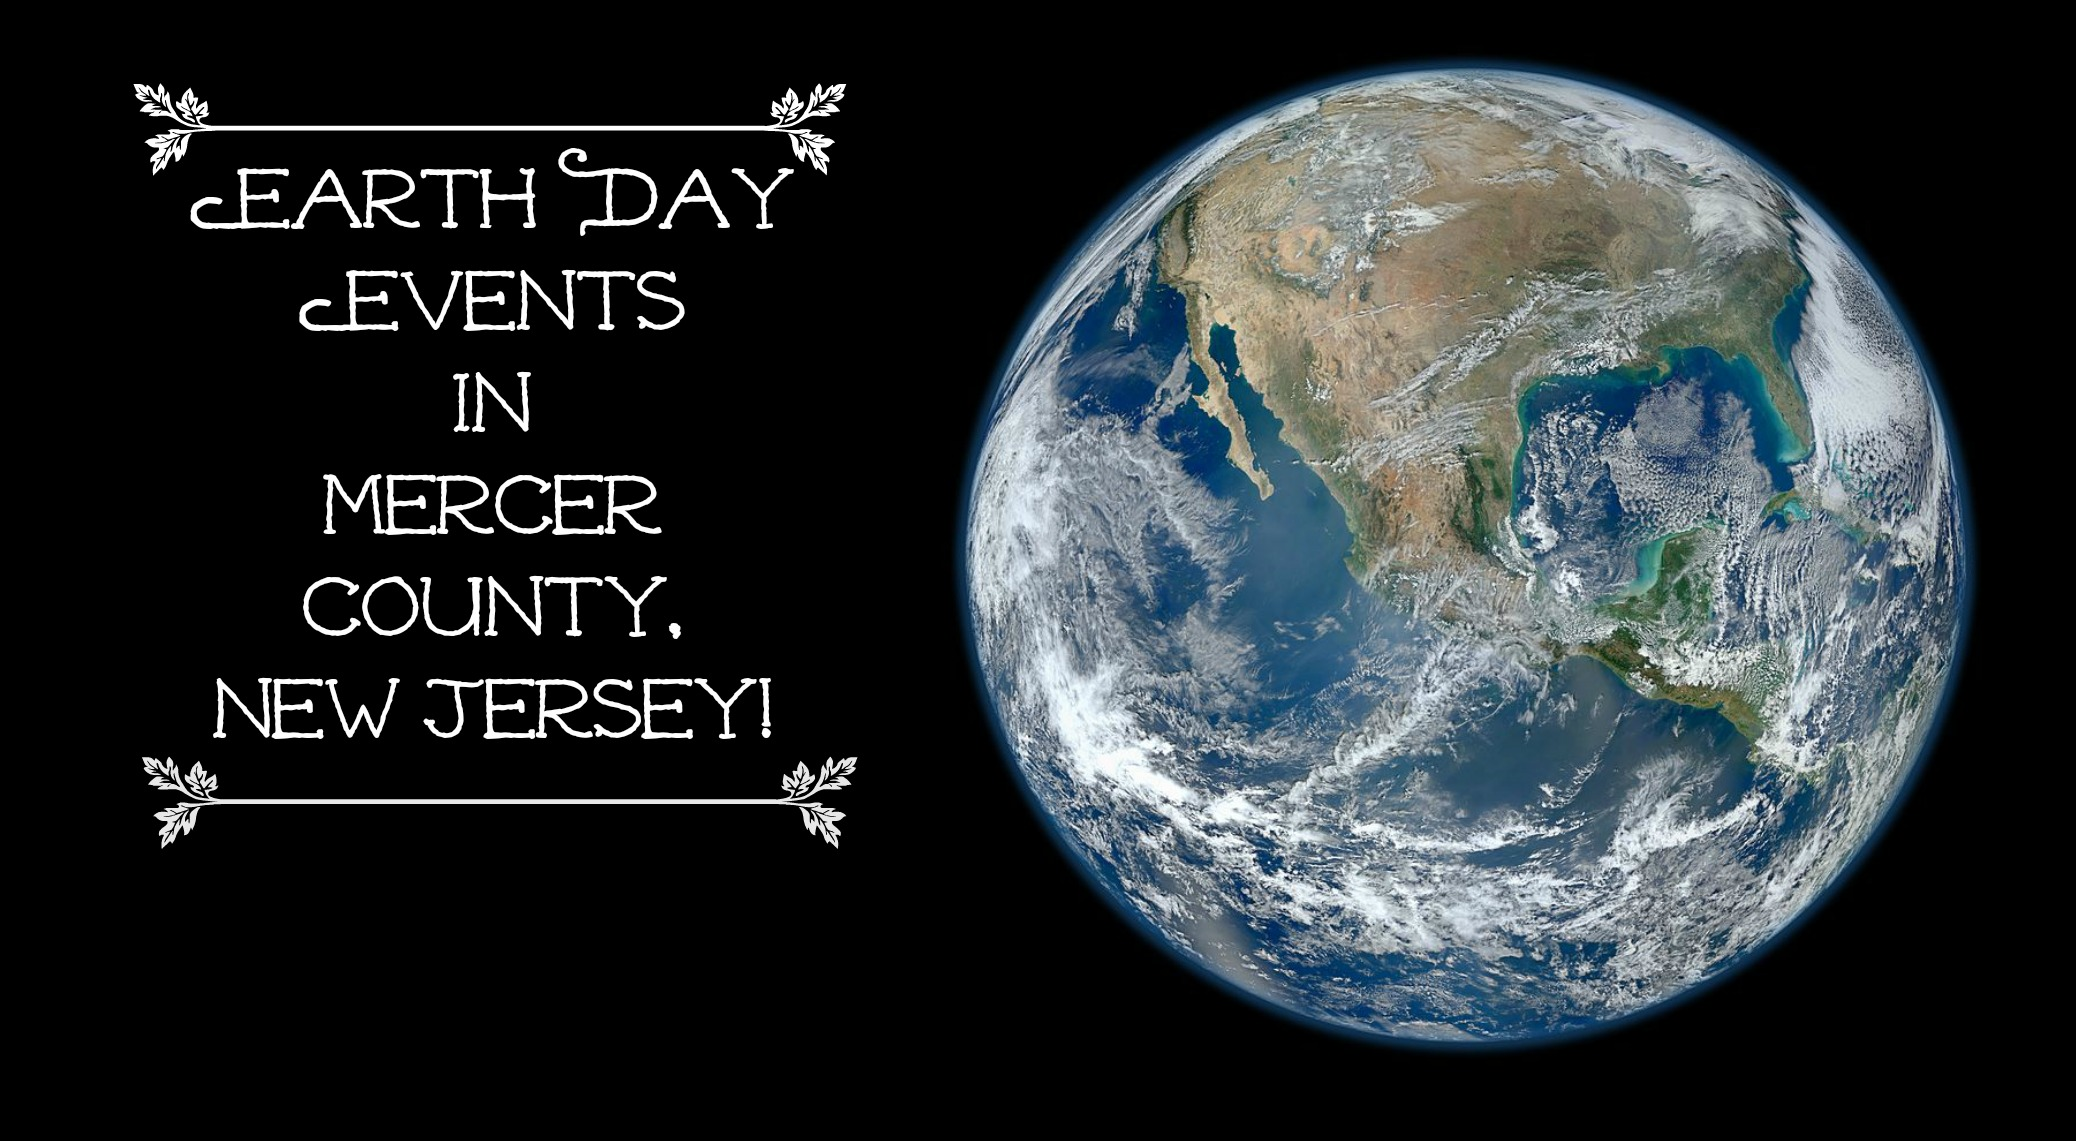 New jersey sussex county vernon - Earth Day Events And Activities In Mercer County New Jersey Things To Do In New Jersey